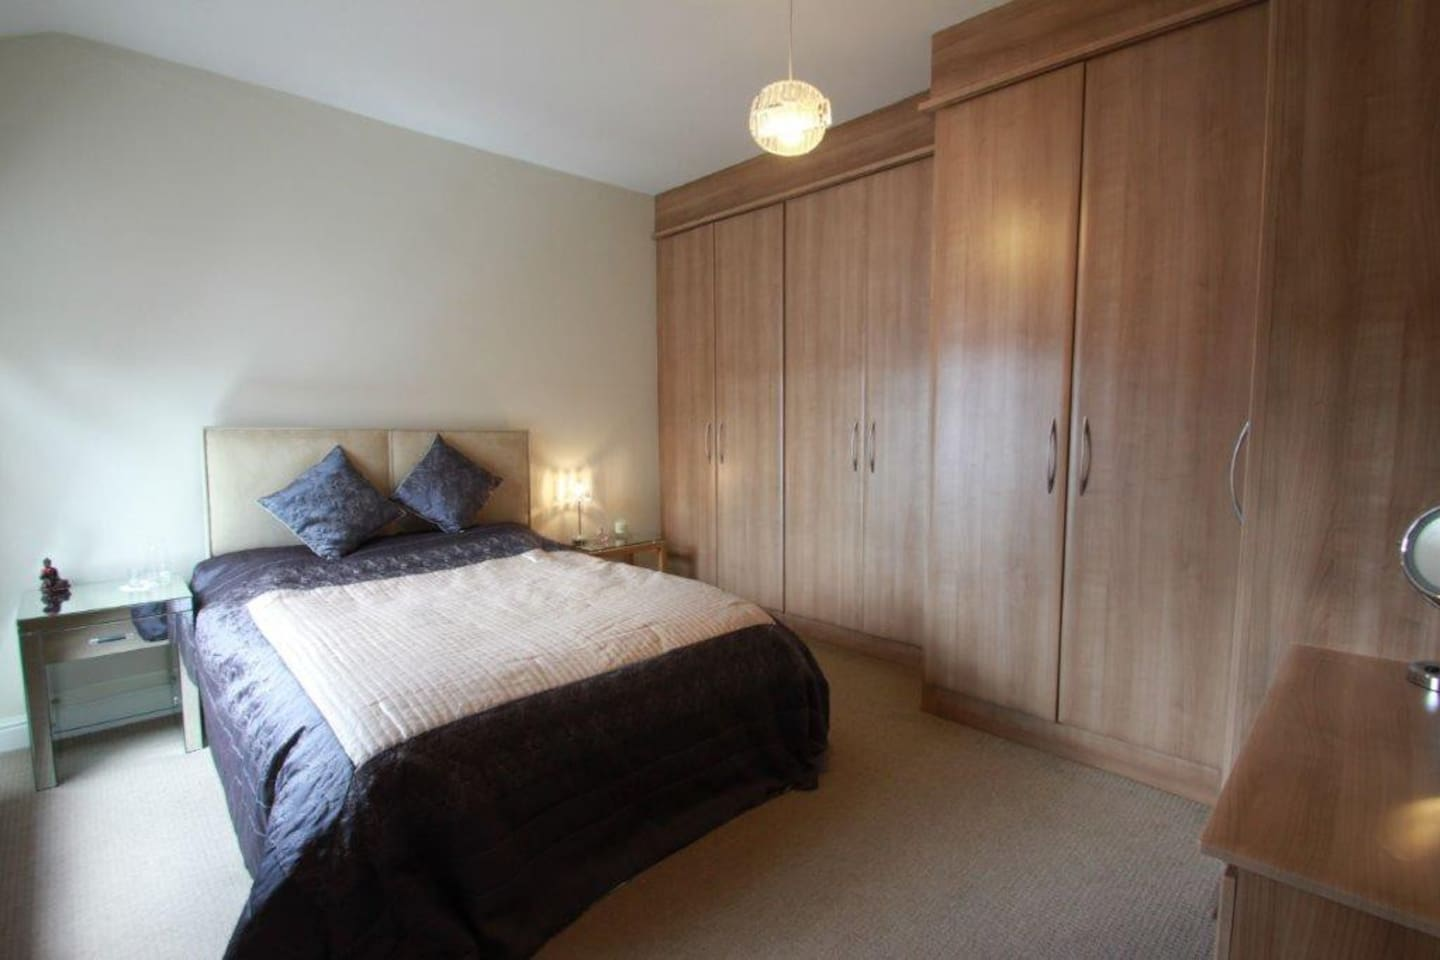 Large bedroom with wardrobe space and workspace. King-size bed